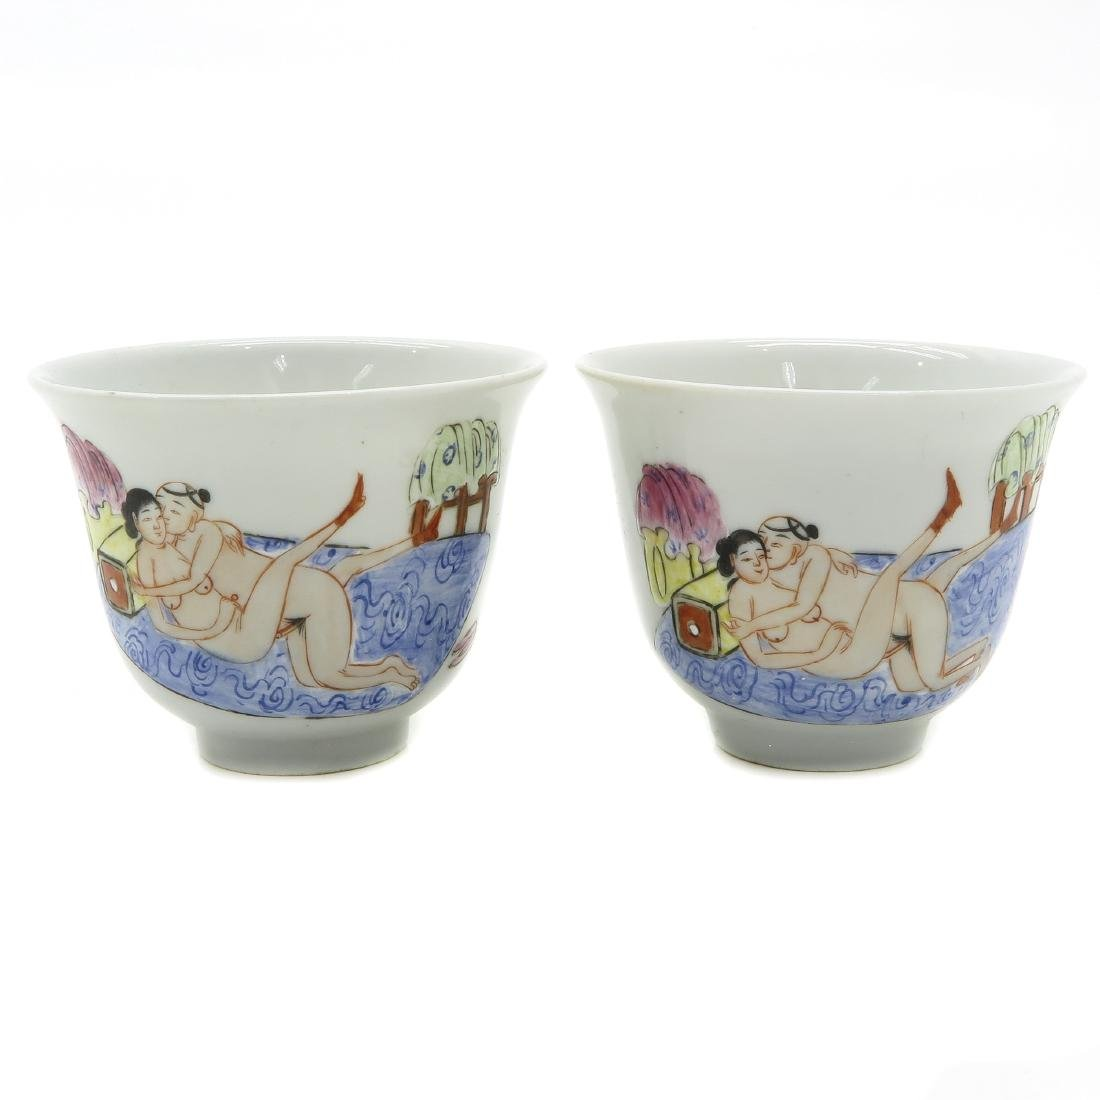 Lot of 2 Erotic Decor Cups